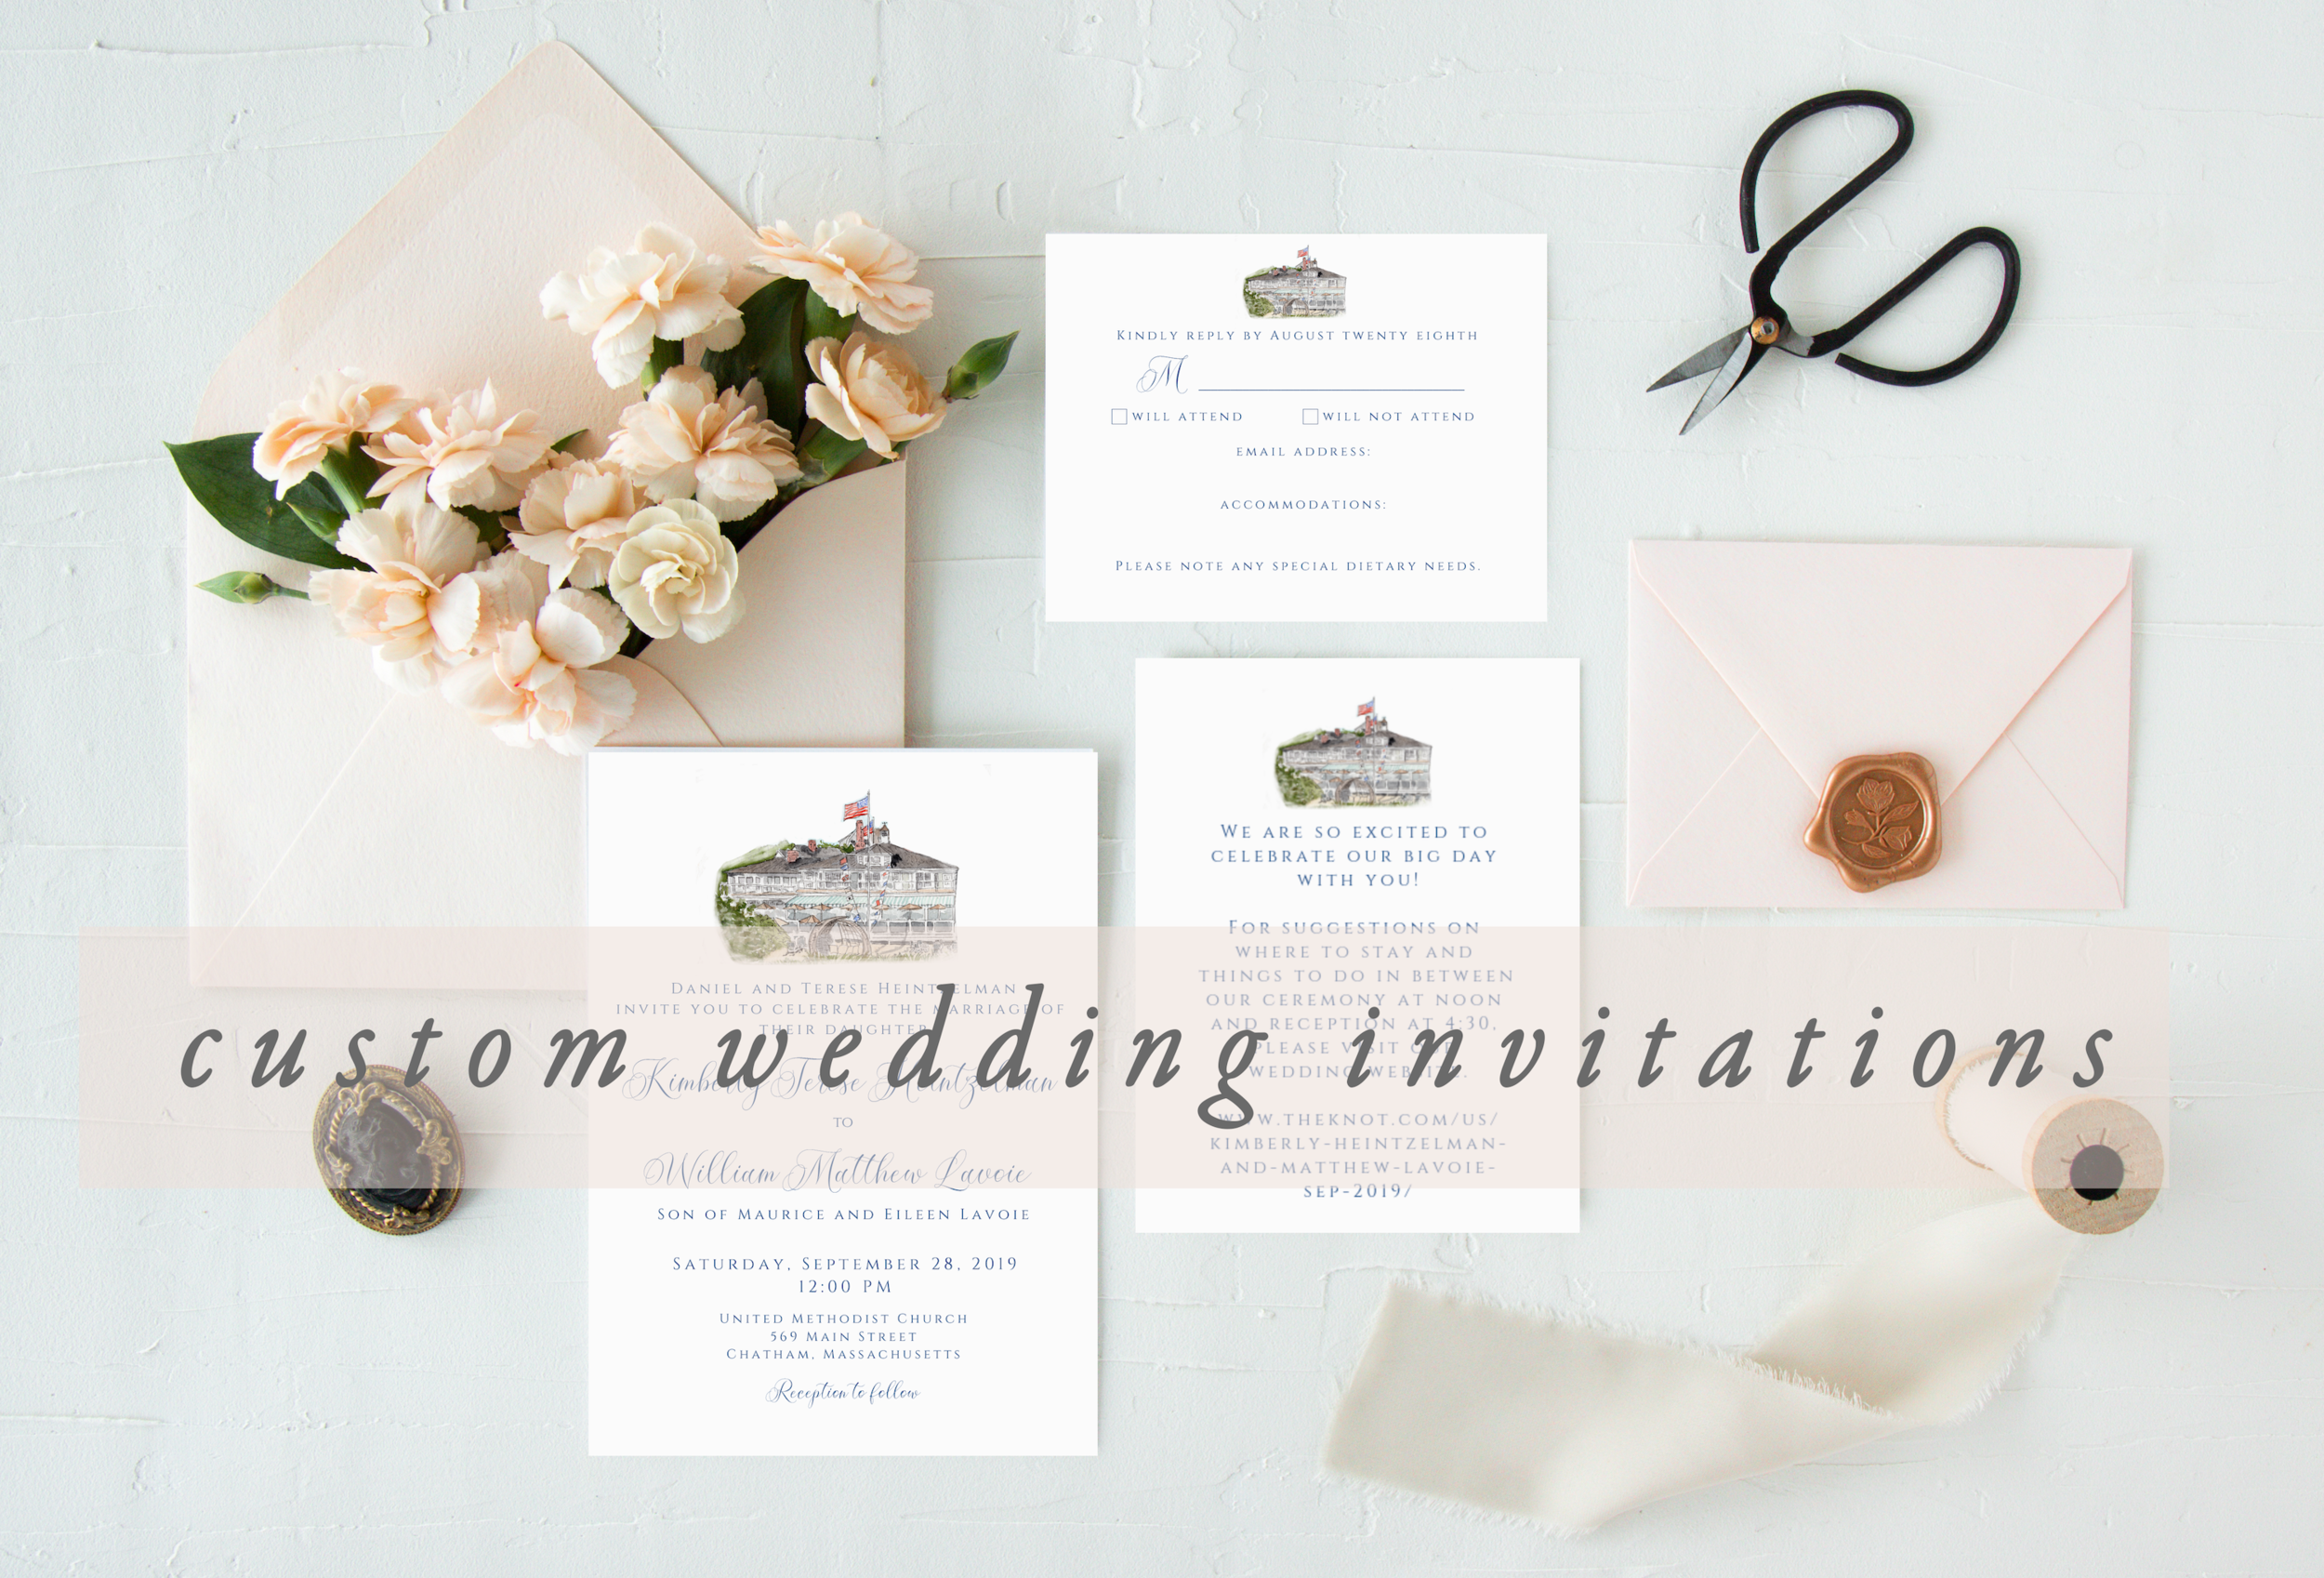 Custom Watercolor Wedding Invitations | Chatham Bars Inn Wedding Invitations | Emily Quigley Ink